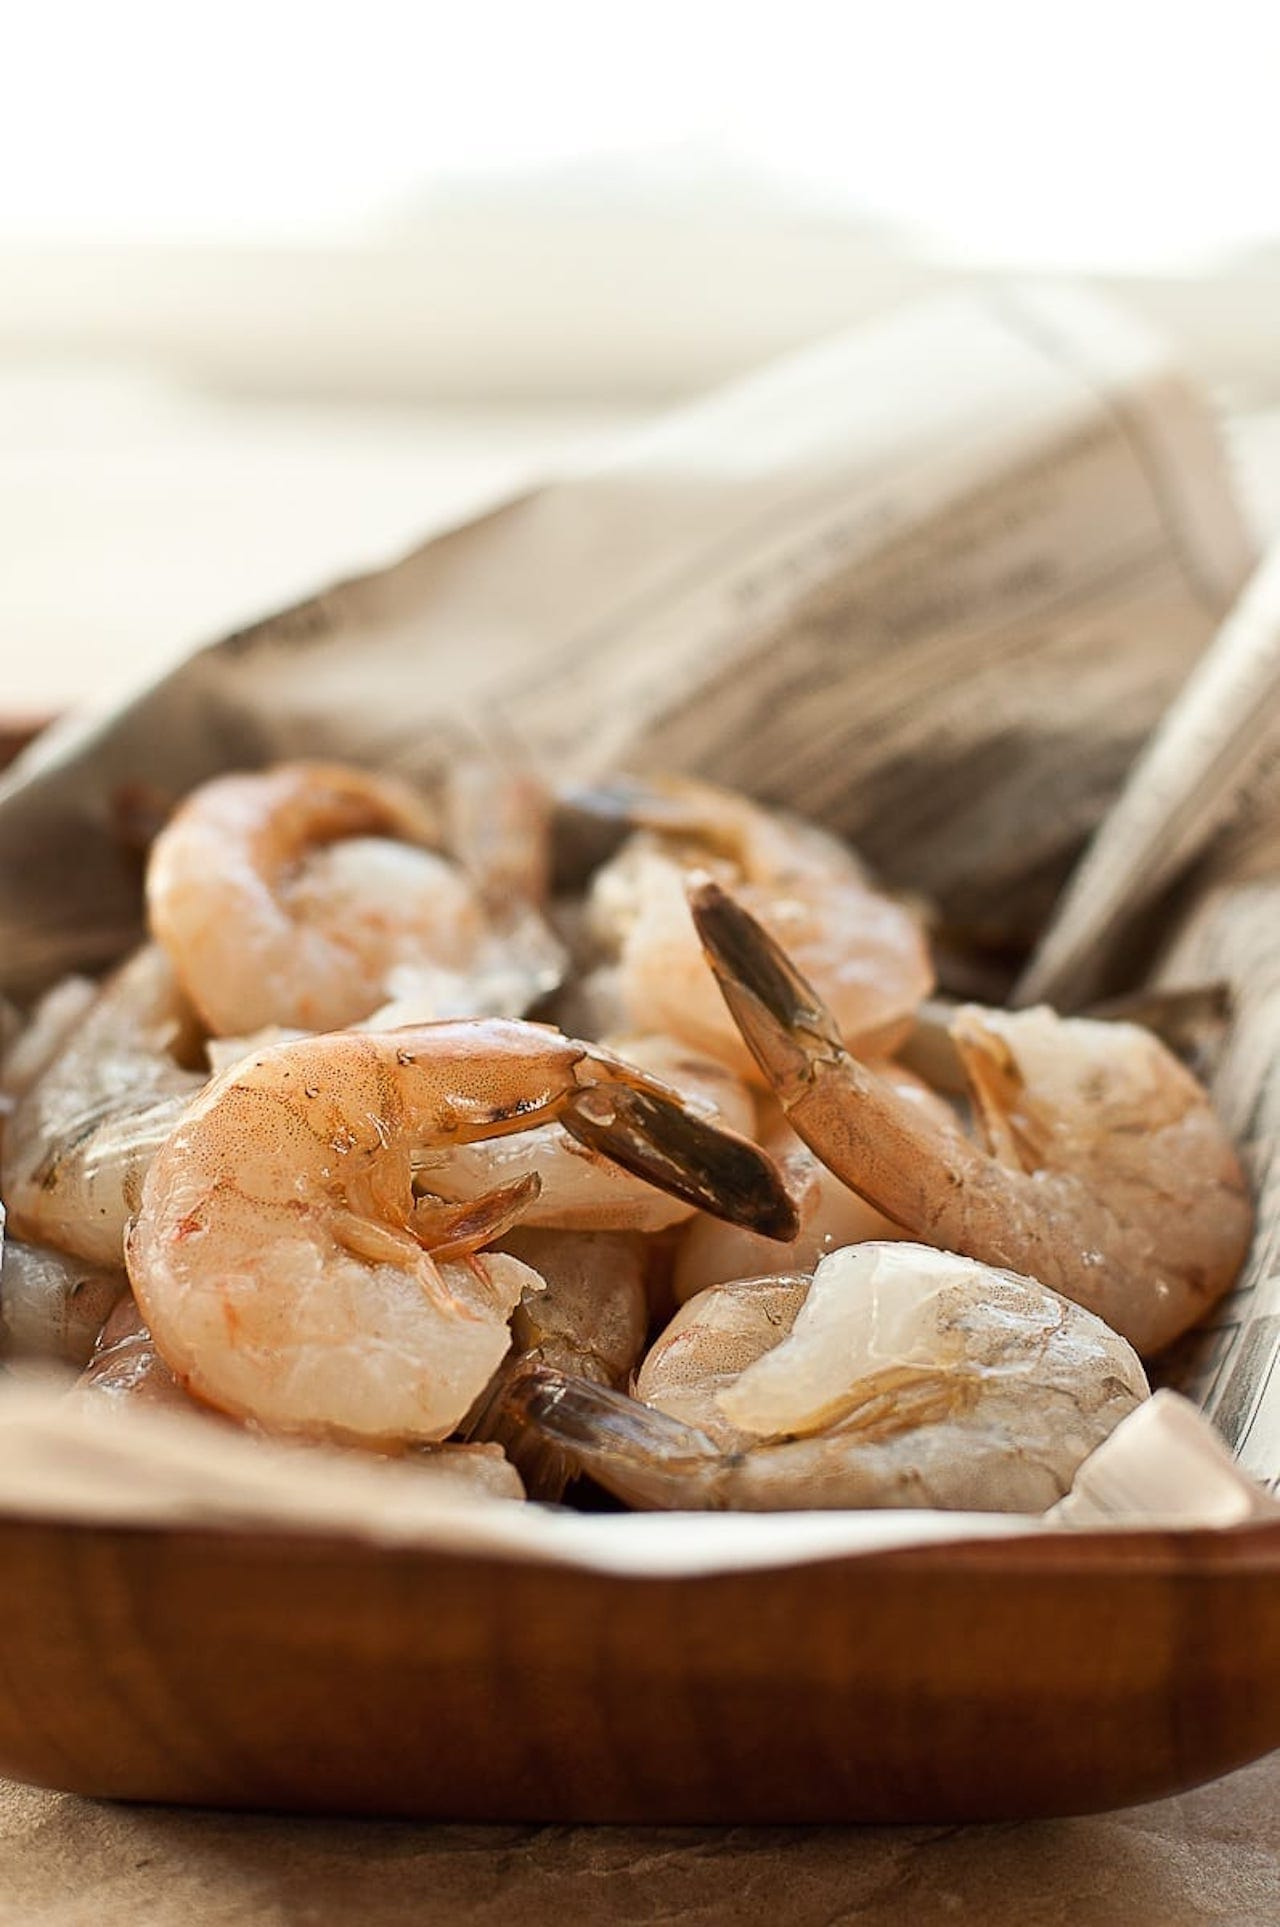 Madras Shrimp Masala - Guest Post by Radhika @ Food for 7 Stages of Life 4